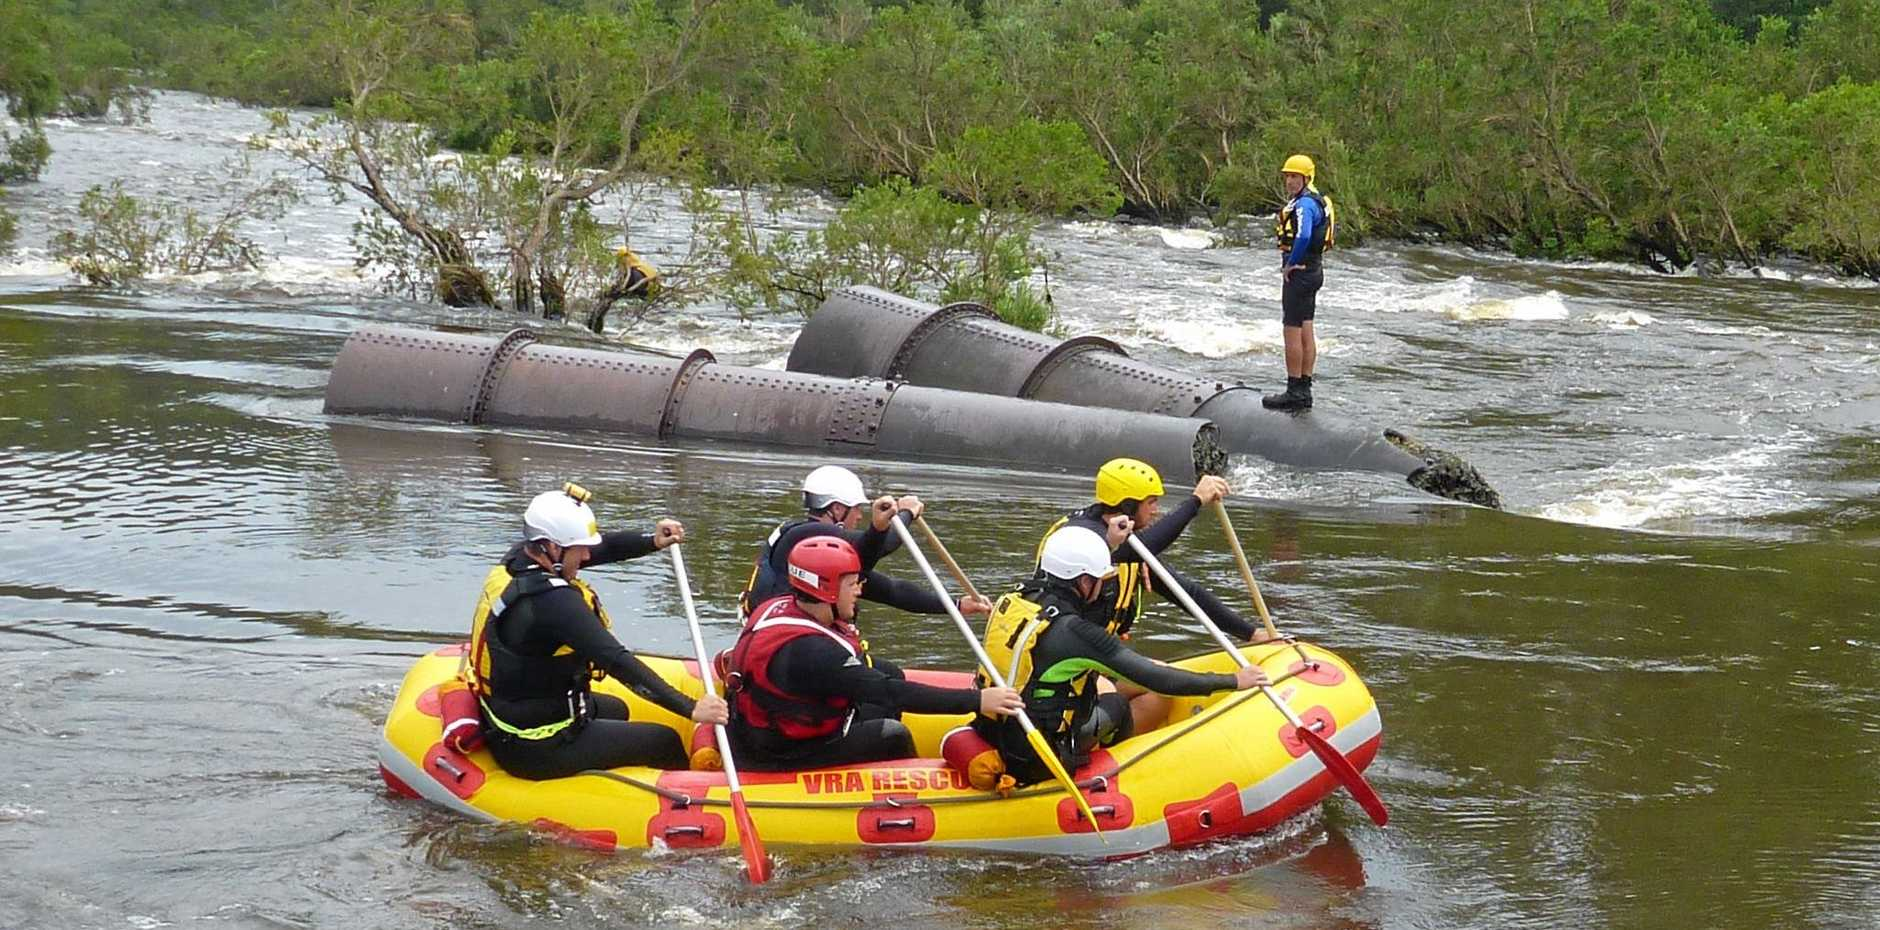 WILD WATER: Volunteer Rescue Association members taking part in swift-water training on the Mann River.